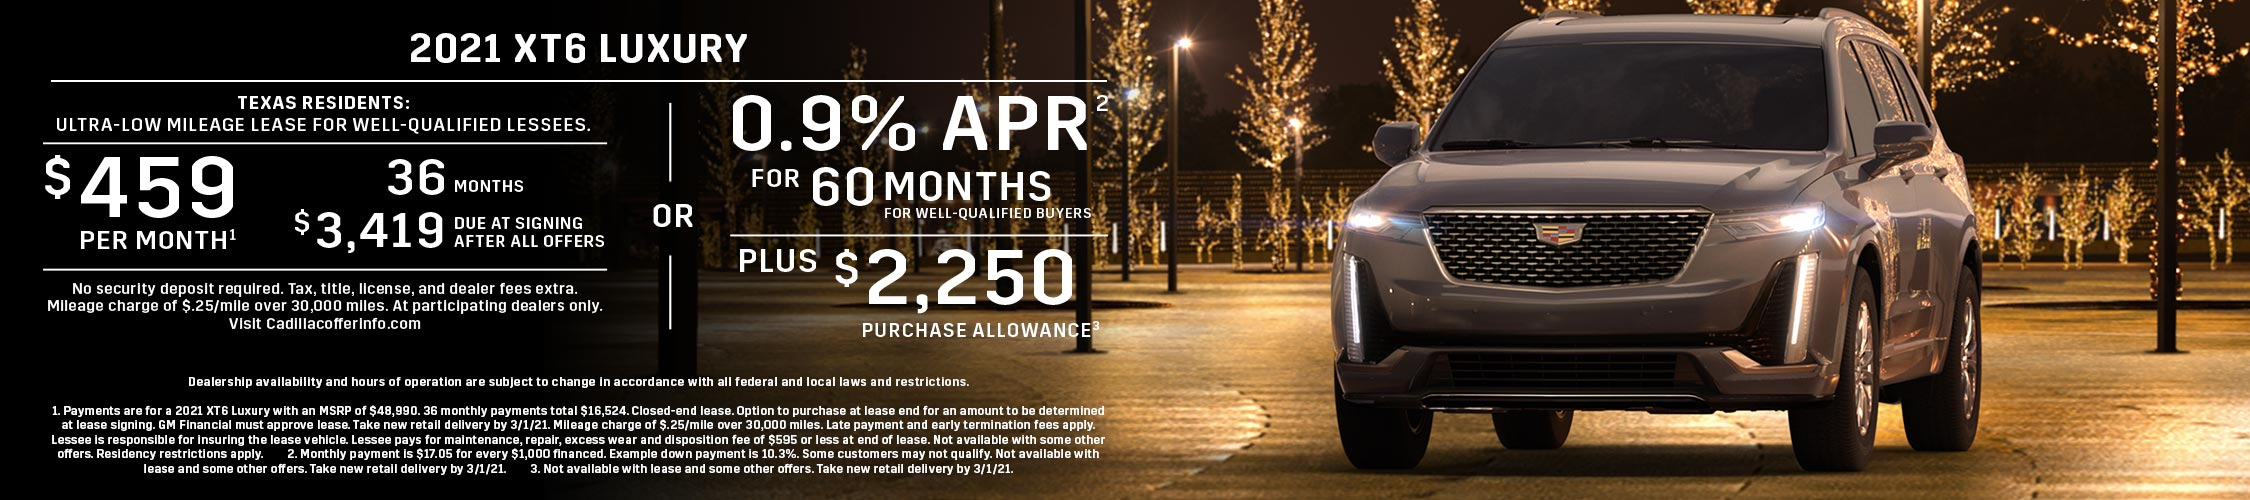 2021 XT6 Luxury: Lease or APR Offer (Image) - 951433